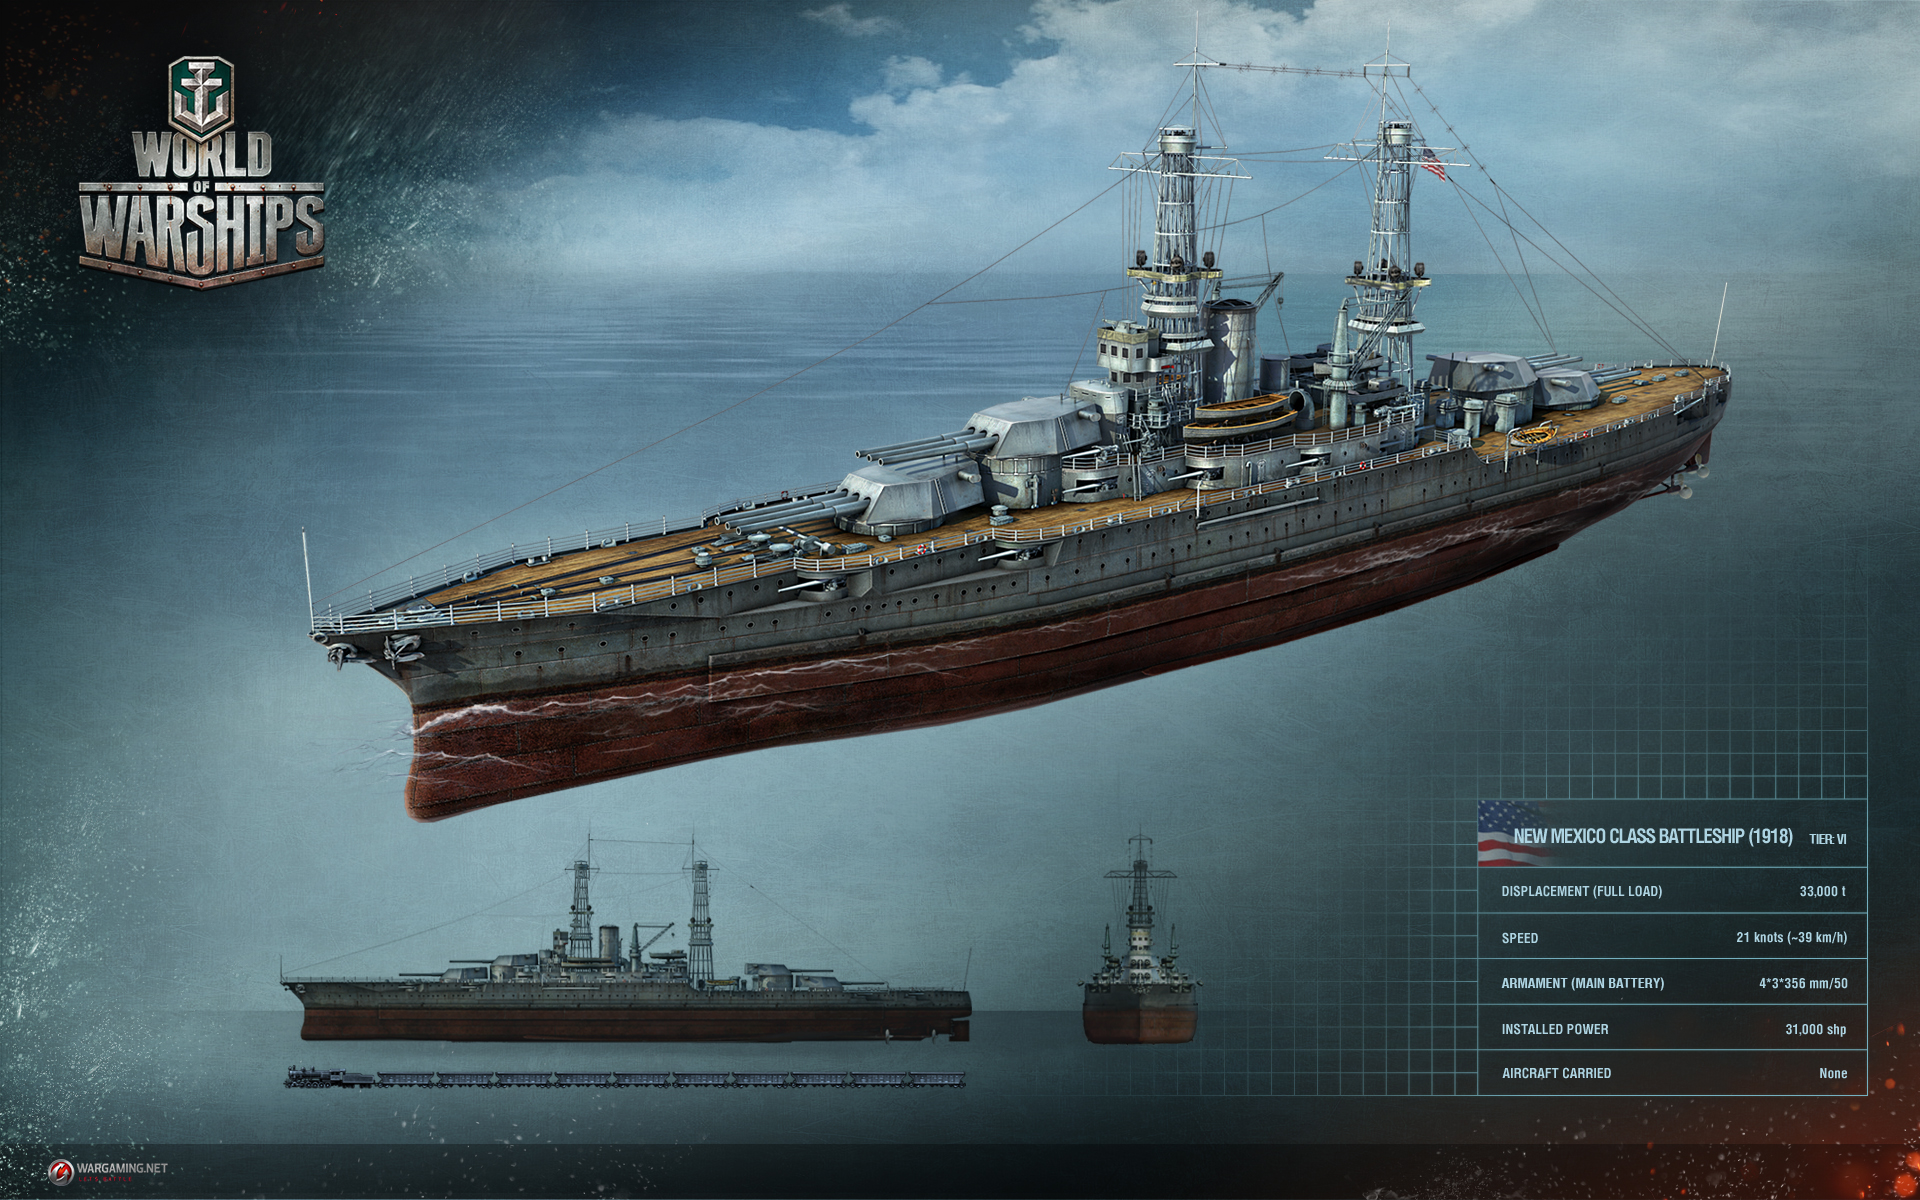 World of Warships Hands-On - Rocket Chainsaw